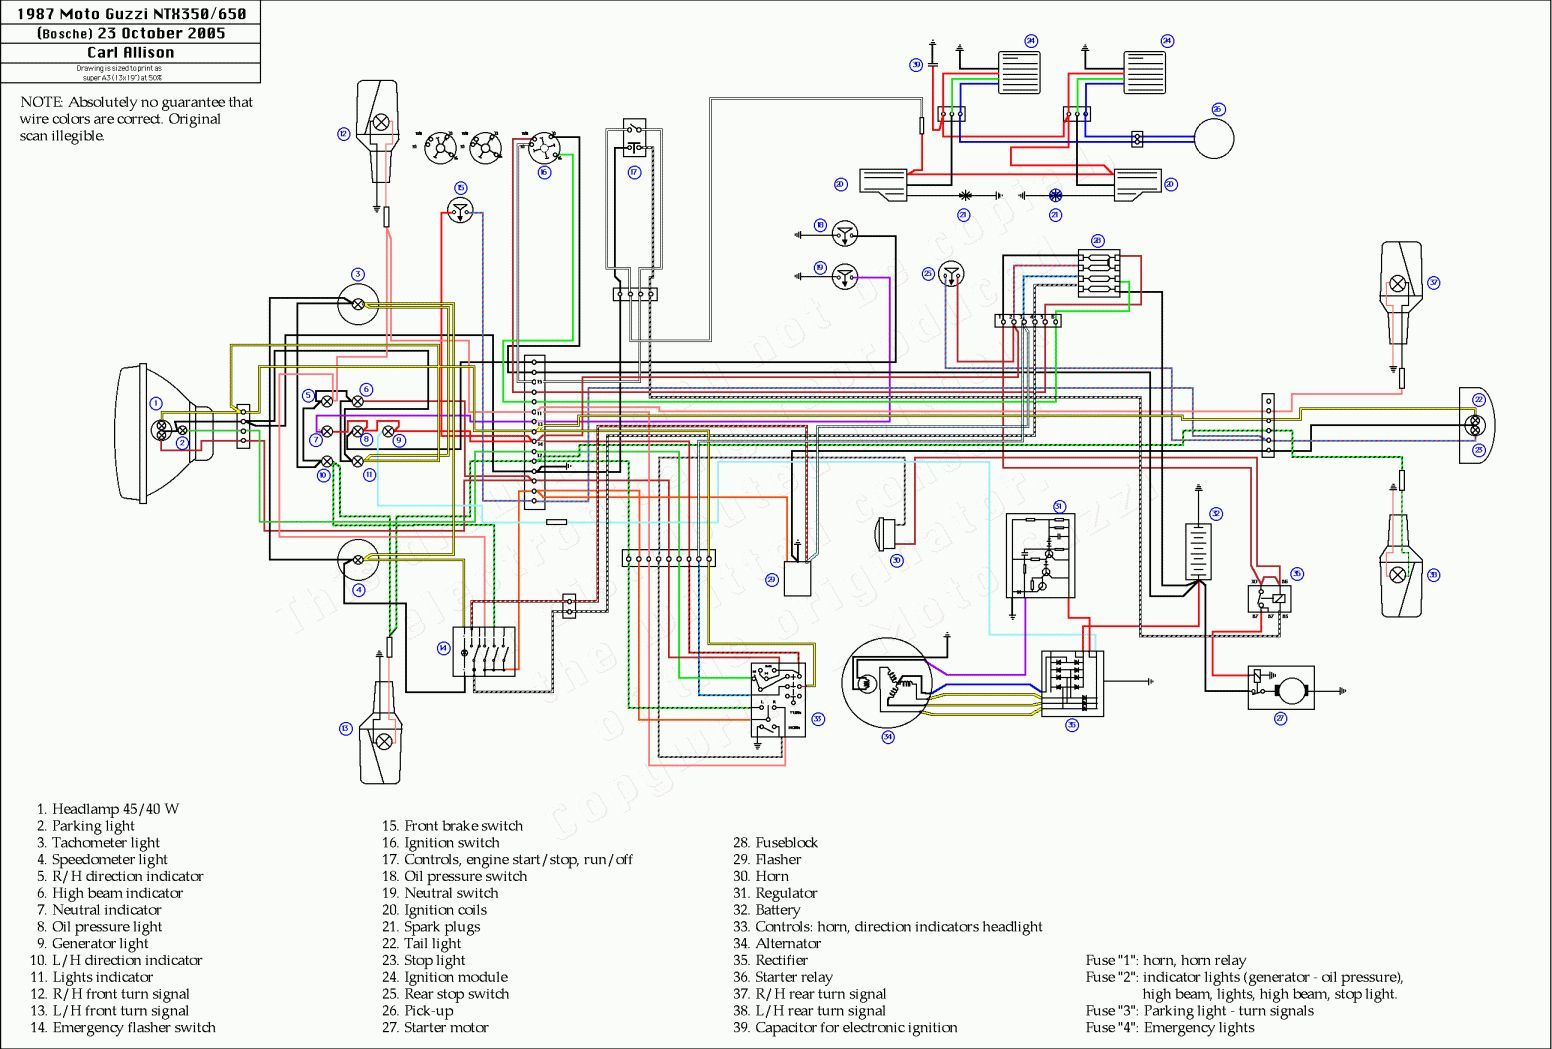 yamaha rs 100 motorcycle wiring diagram and moto guzzi wire diagram wiring  diagrams 17 yamaha … | motorcycle wiring, electrical diagram, electrical wiring  diagram  pinterest